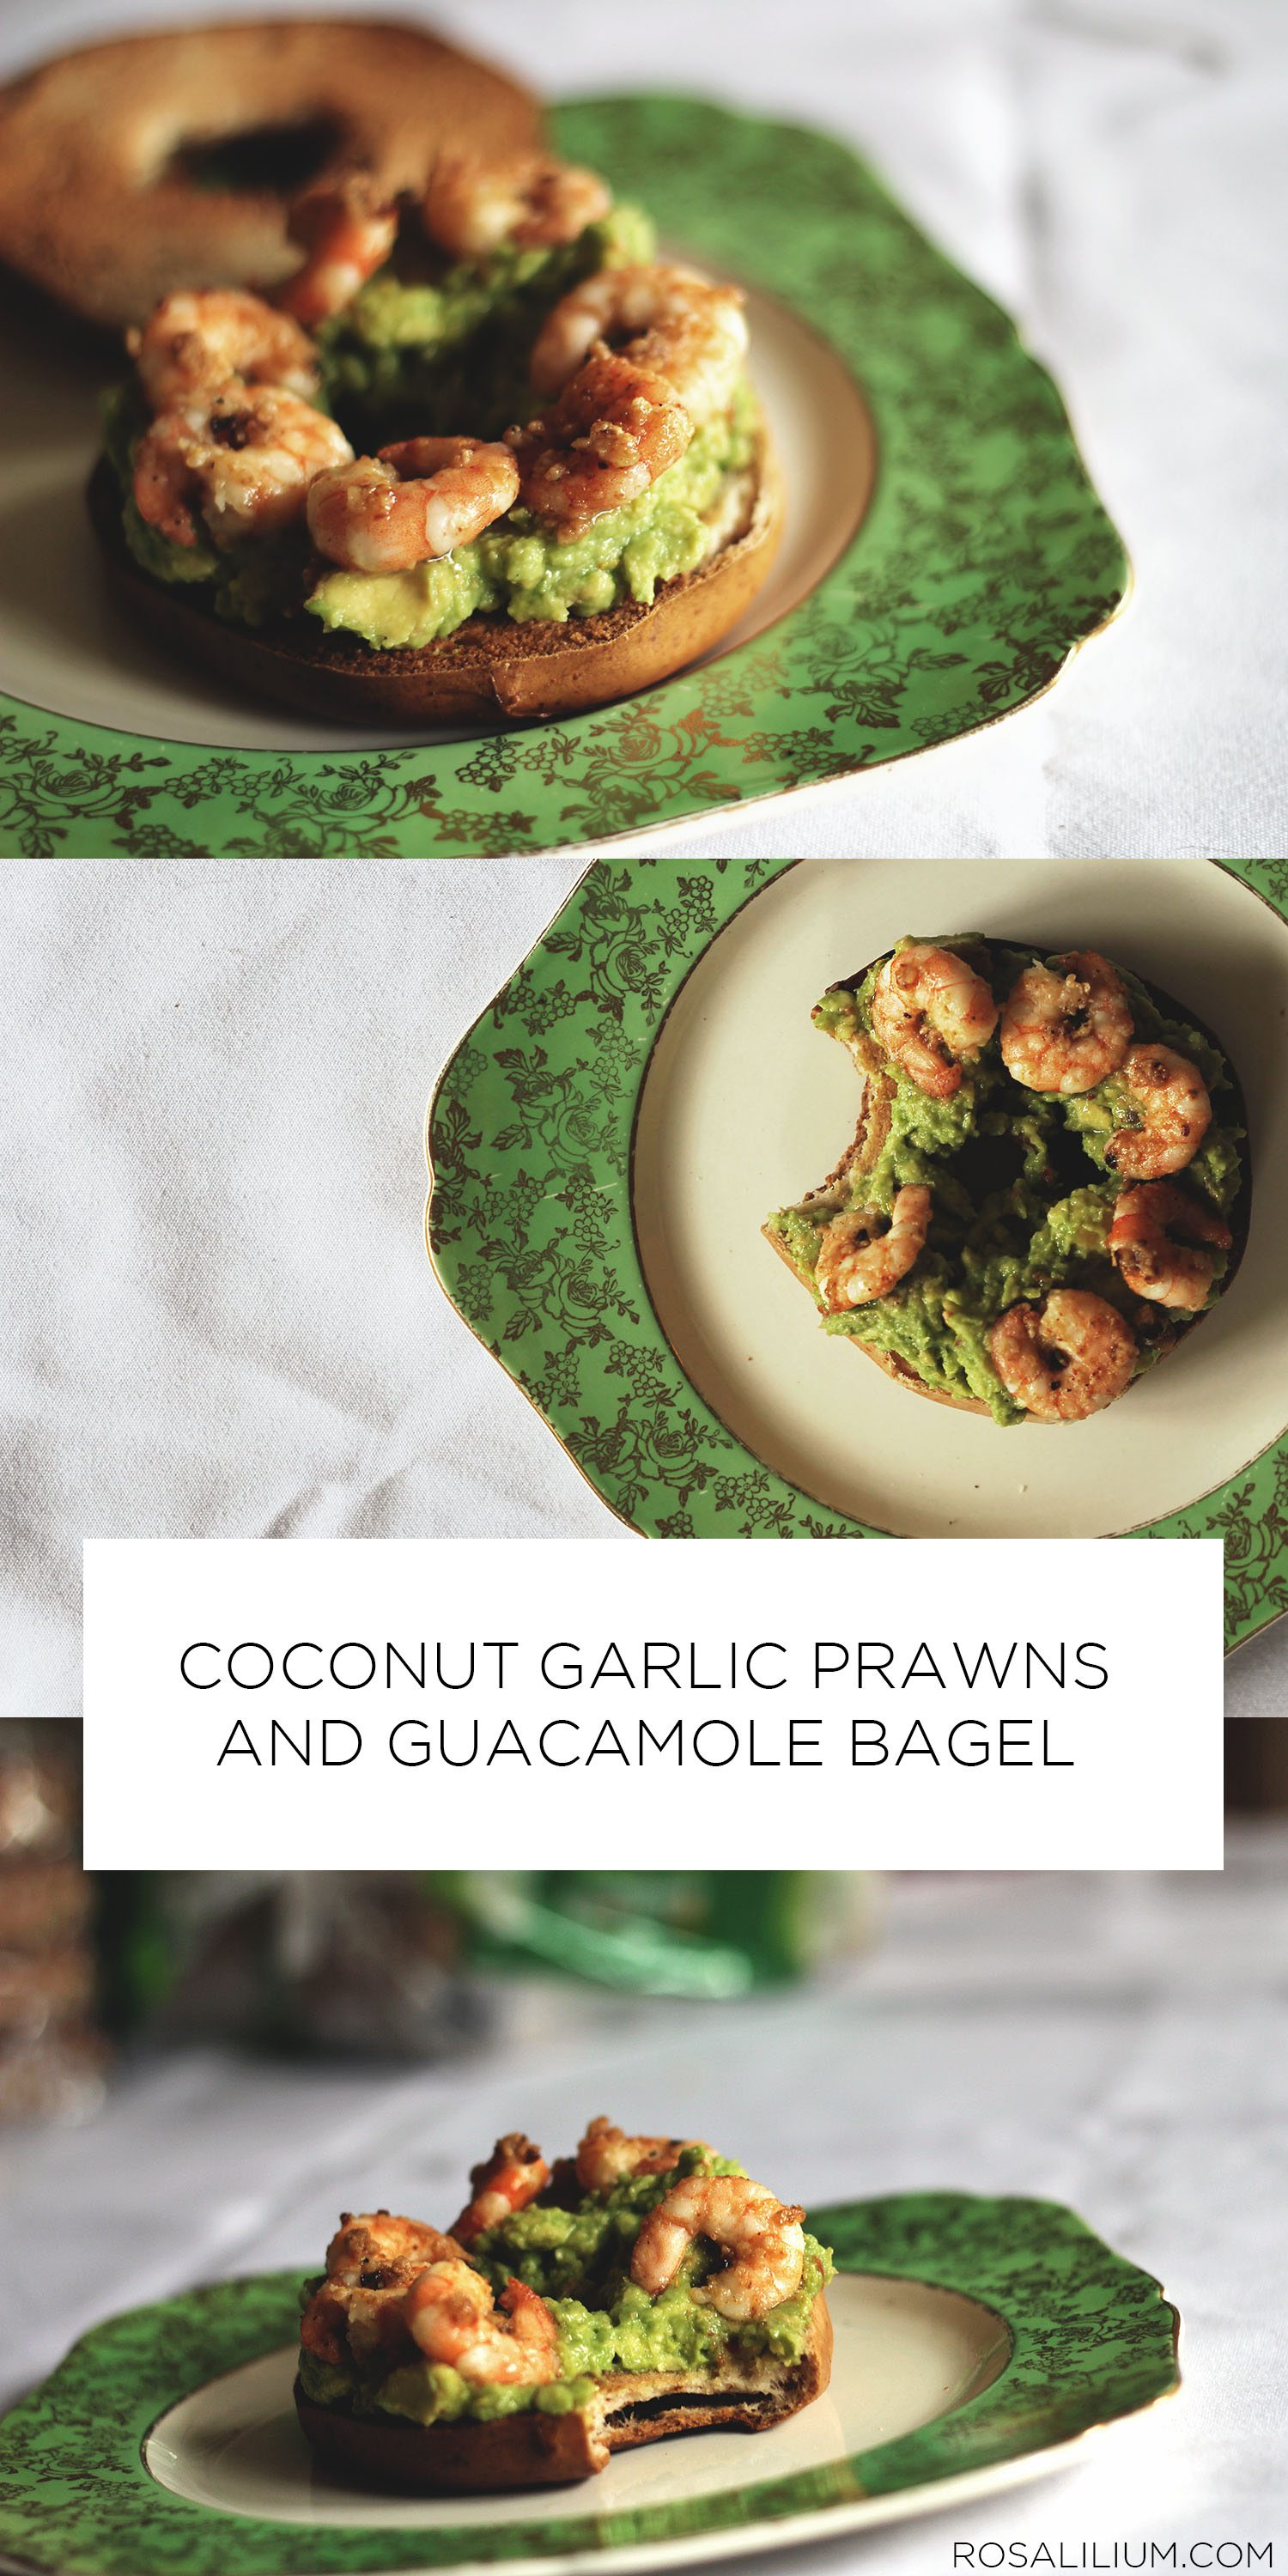 Coconut Garlic Prawns and Guacamole Bagel